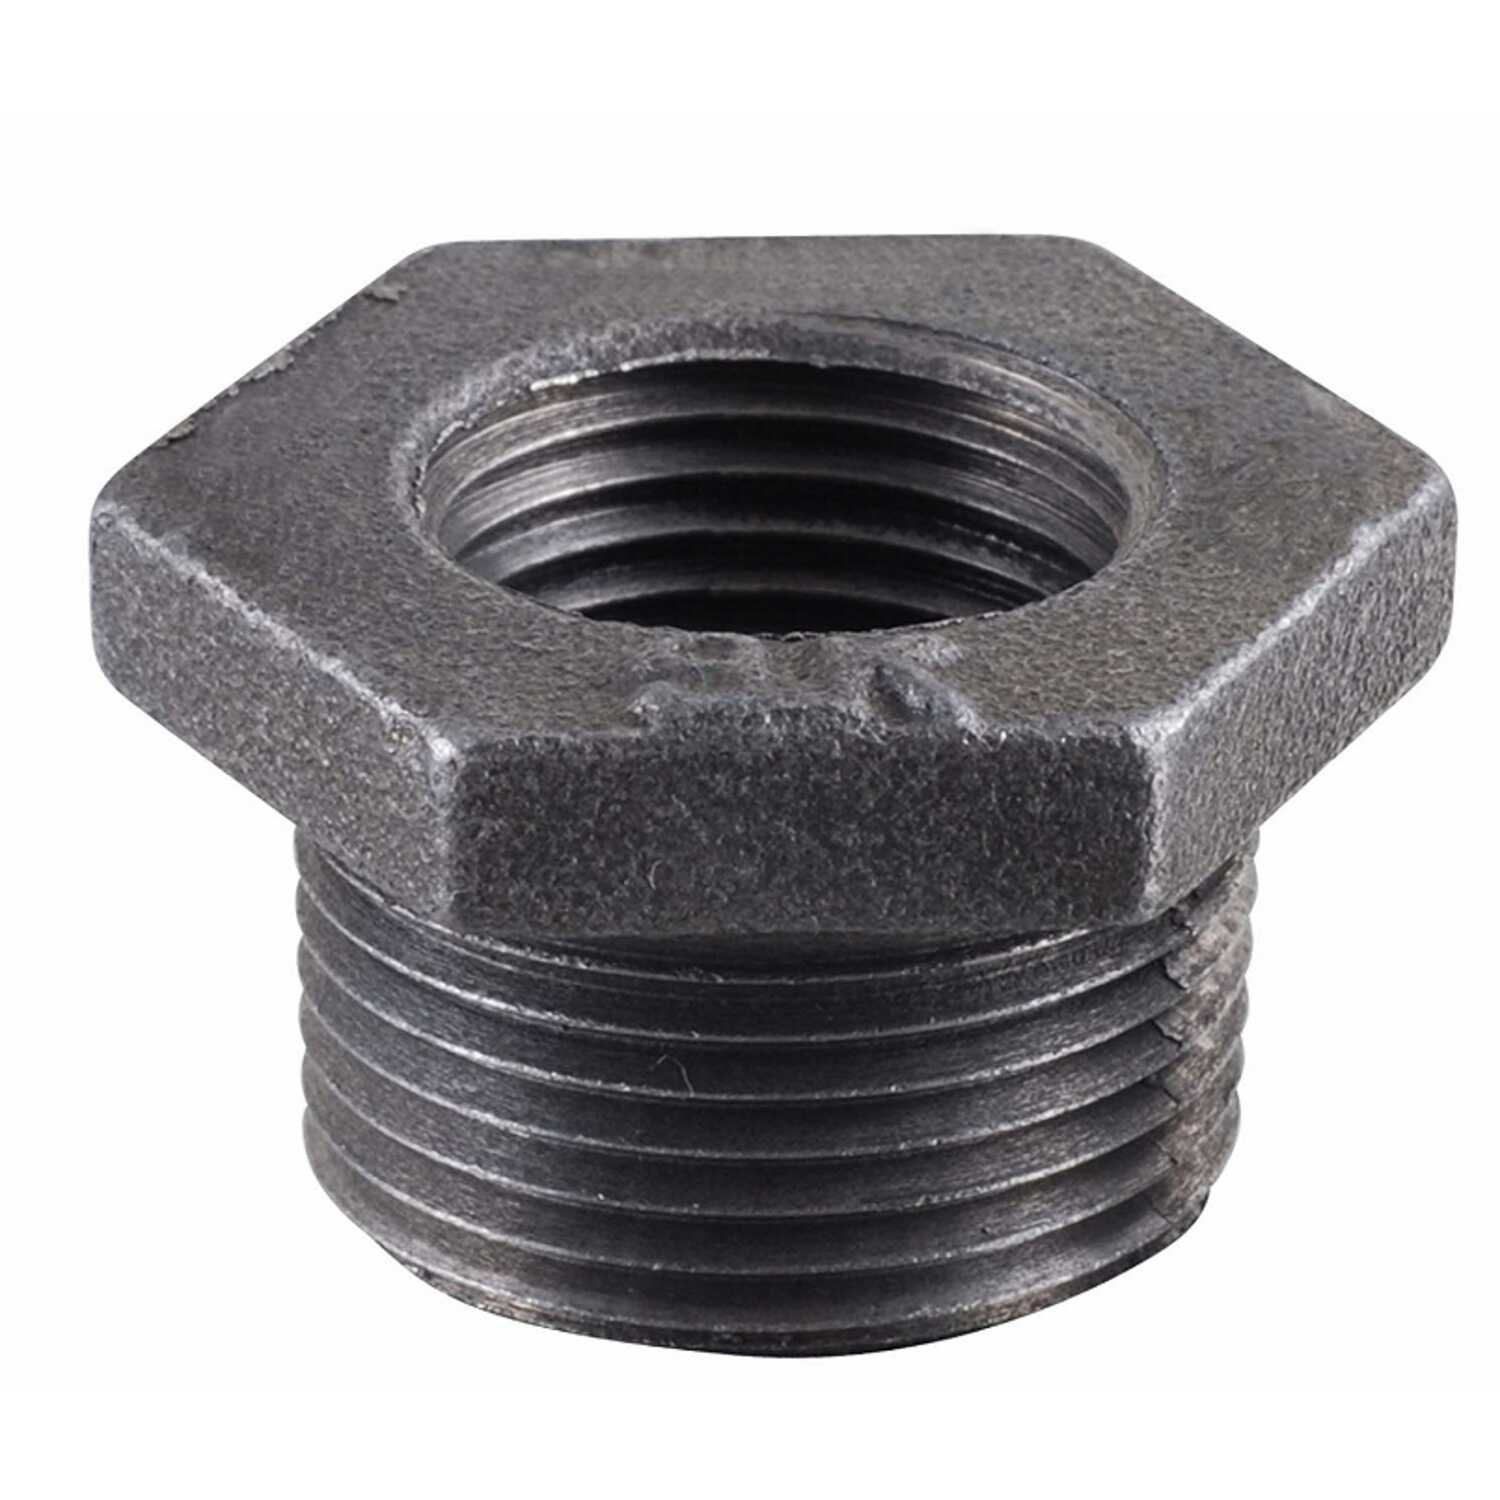 B & K  2 in. MPT   x 1/2 in. Dia. FPT  Black  Malleable Iron  Hex Bushing